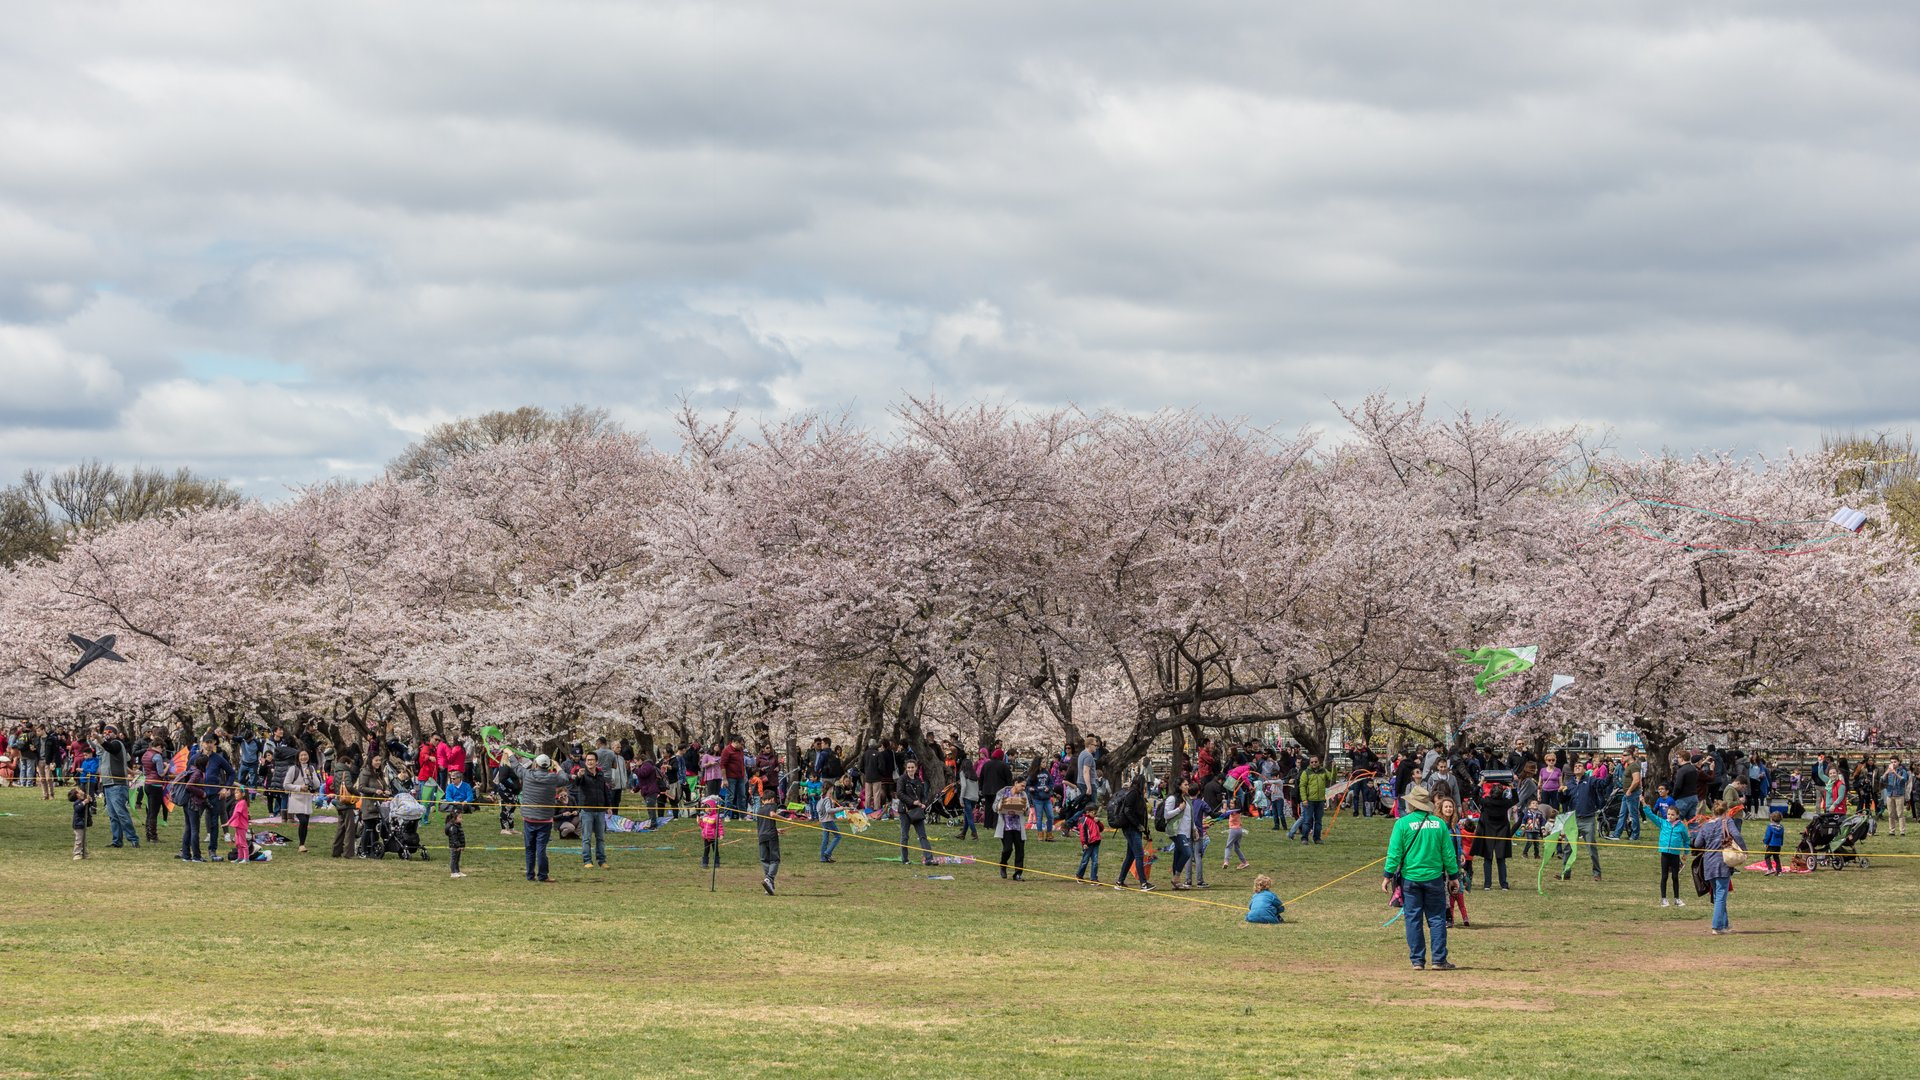 At the National Cherry Blossom Kite Festival 2020